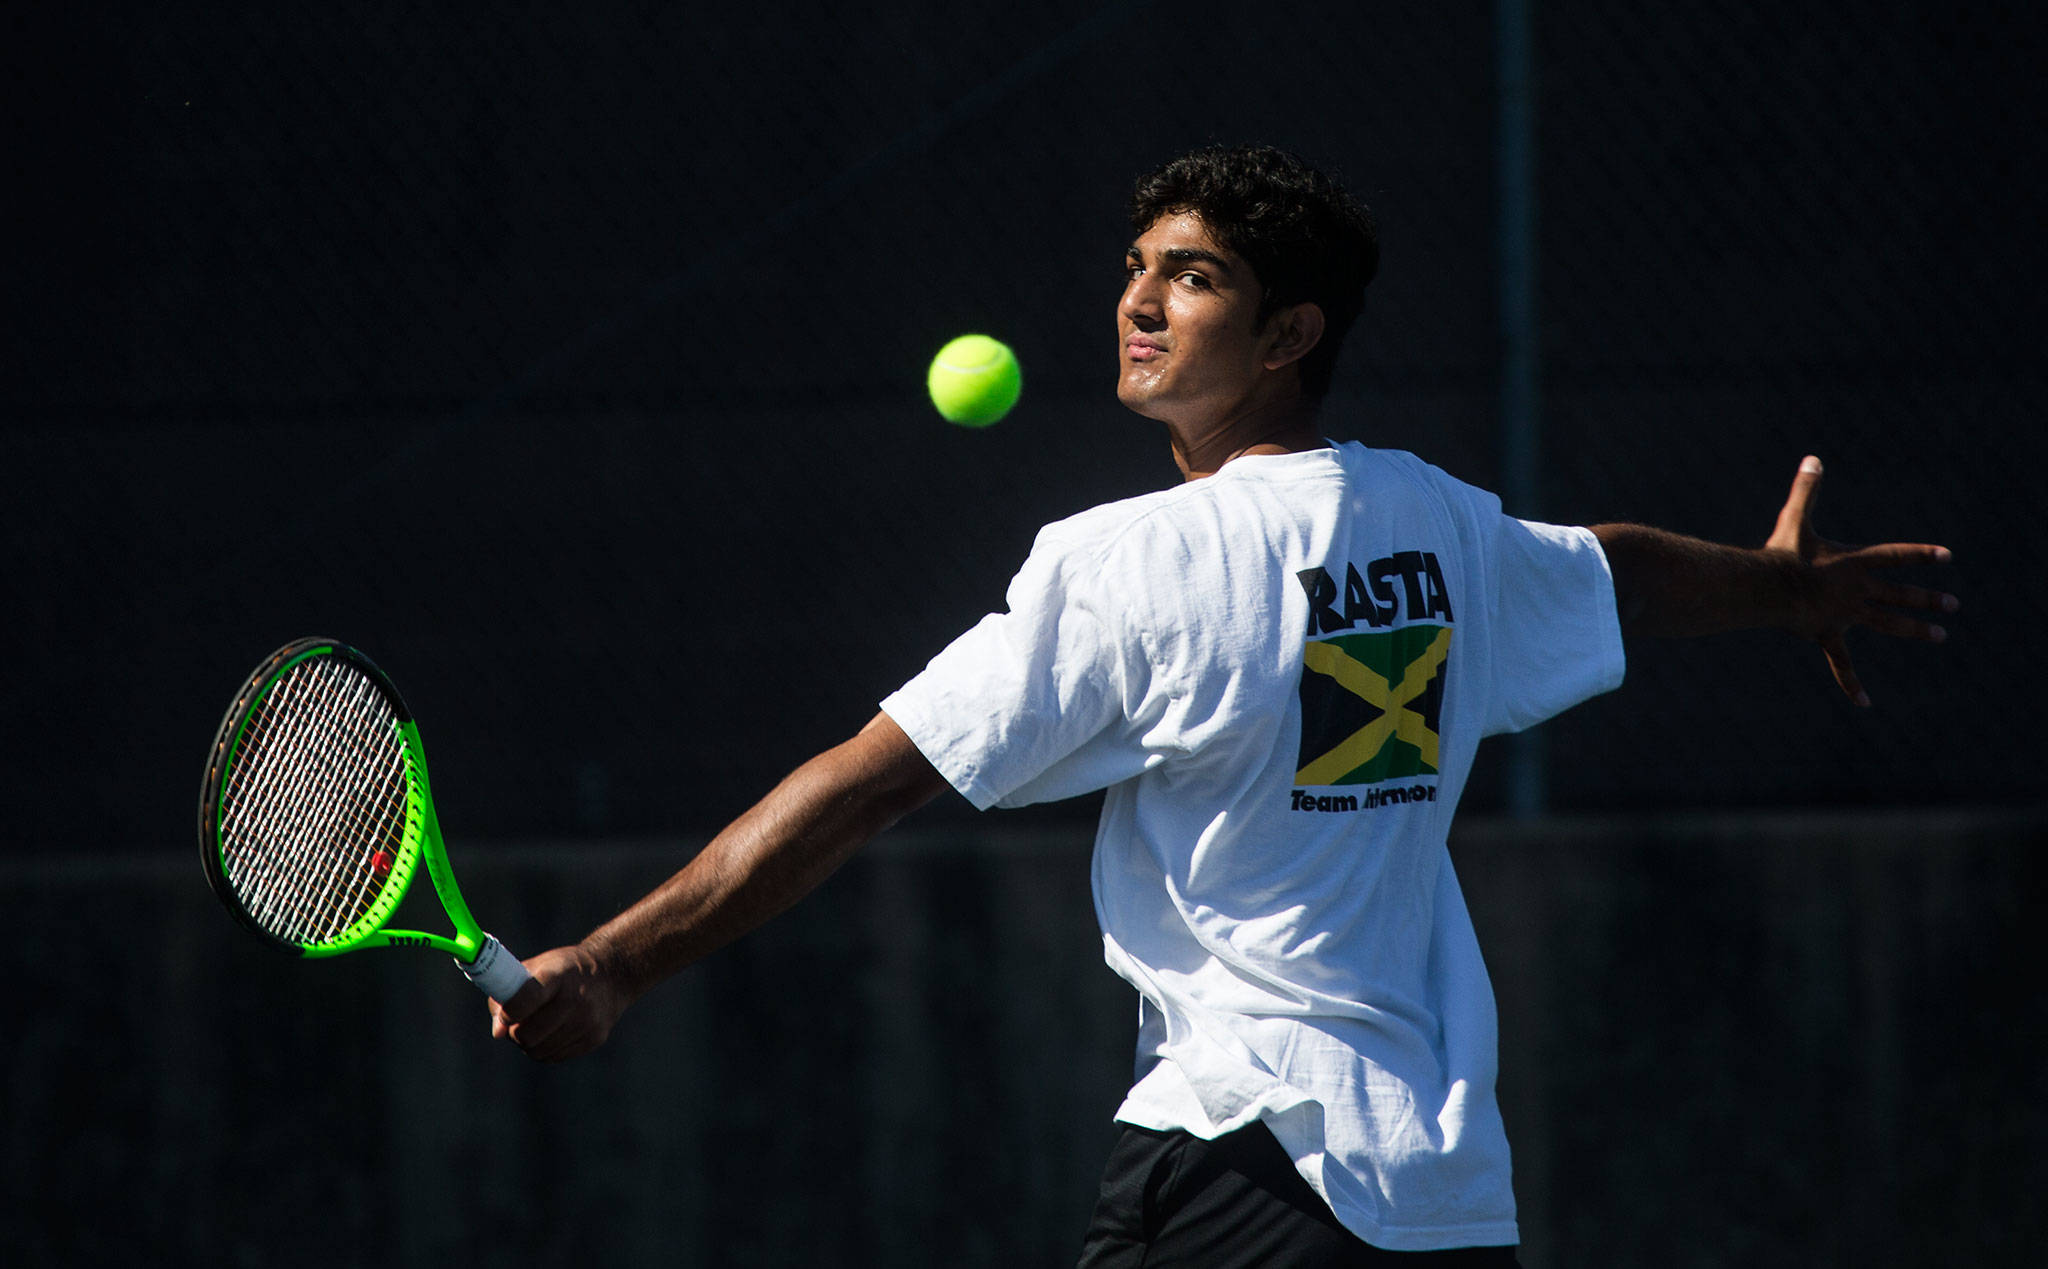 Jackson senior Anuj Vimawala watches the ball on a backhand shot during practice on Aug. 27 in Everett. Vimawala is one of the top returning tennis players in the area this season. (Andy Bronson / The Herald)